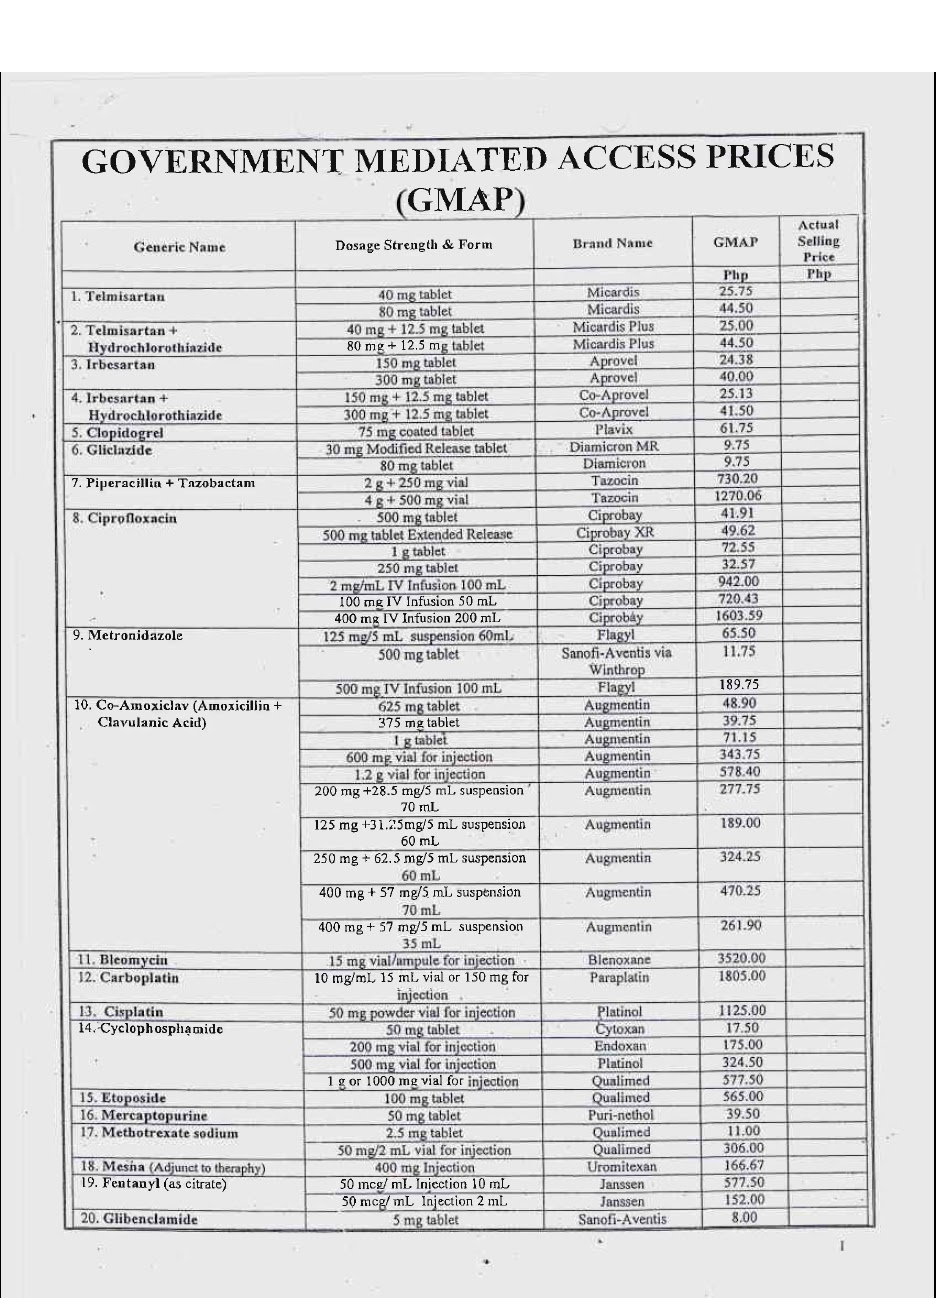 Pharmacy Mdrp And Gmap